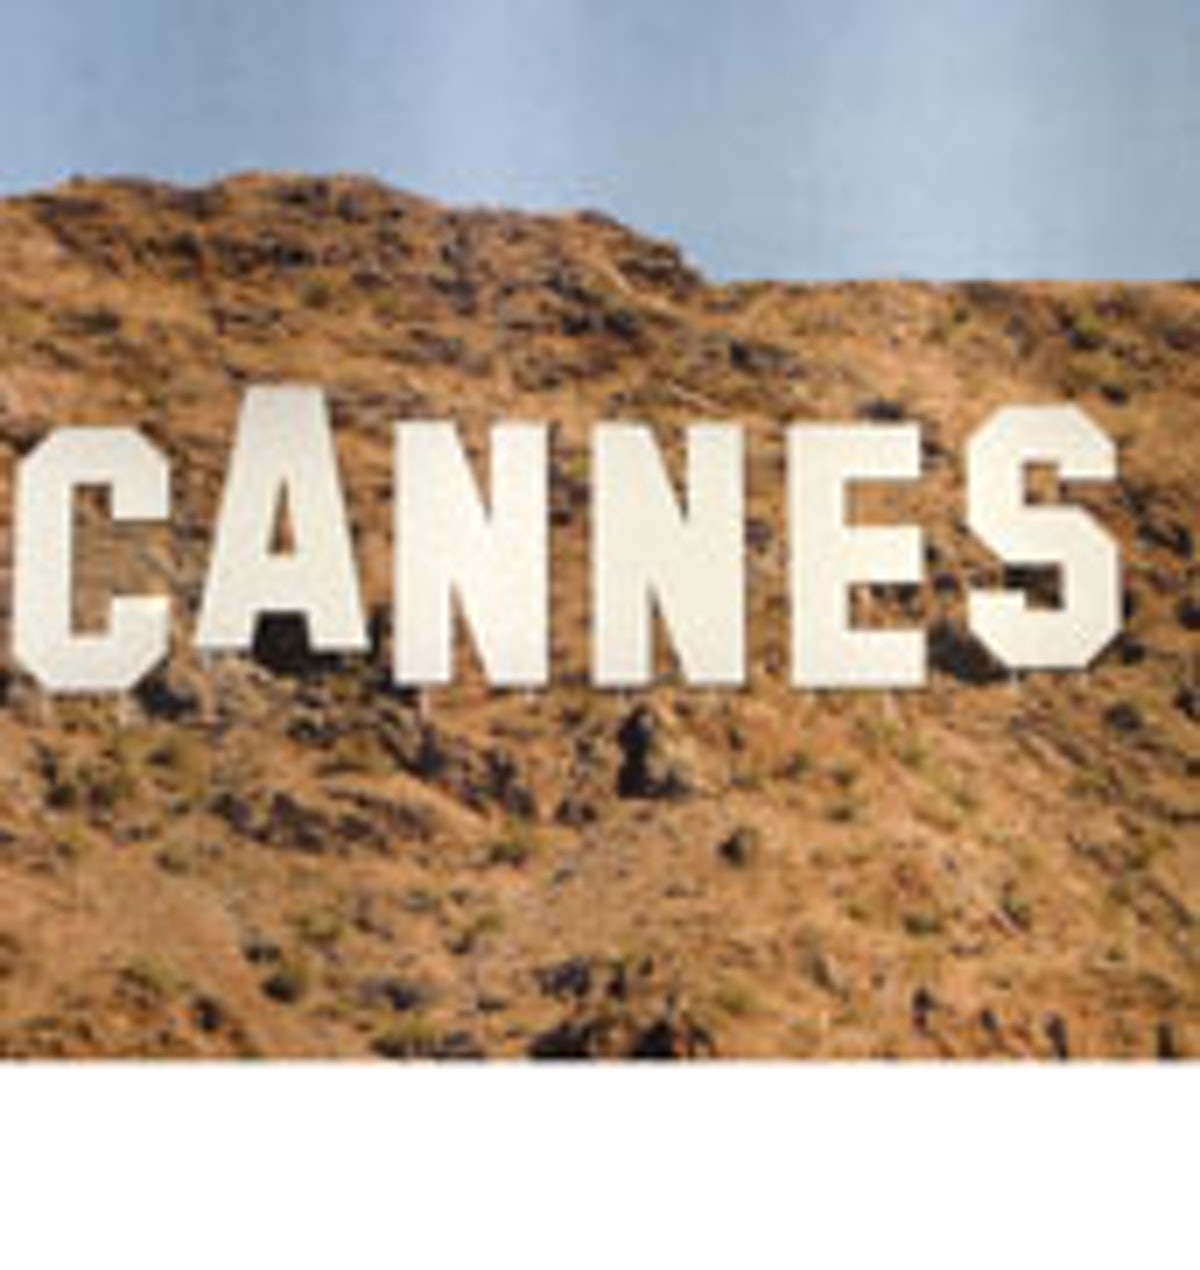 cess_cannes2_search1.jpg